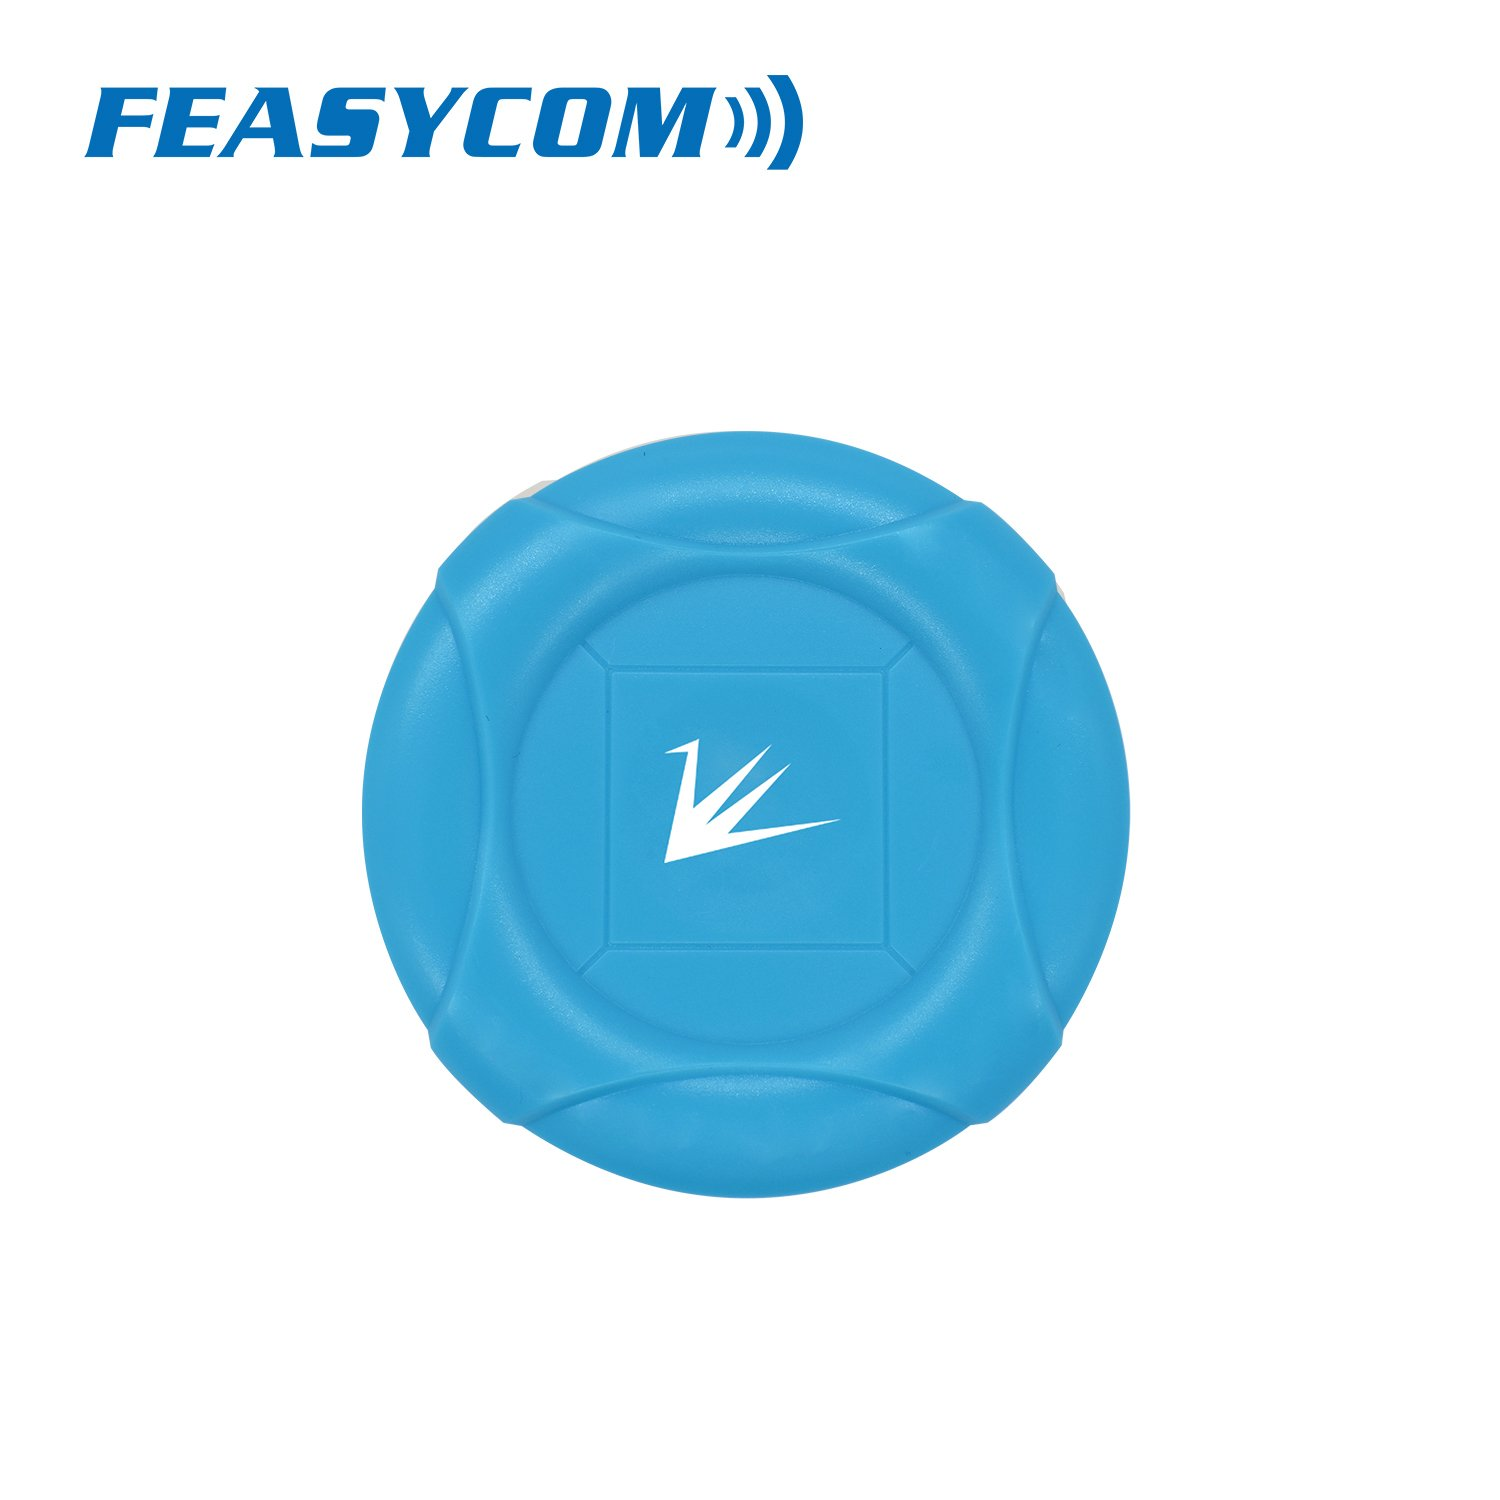 Feasycom Long range 500m programmable & battery powered BLE bluetooth 5.0 ibeacon eddystone beacon, Android beacon technology for Android and iOS by Feasycom (Image #5)